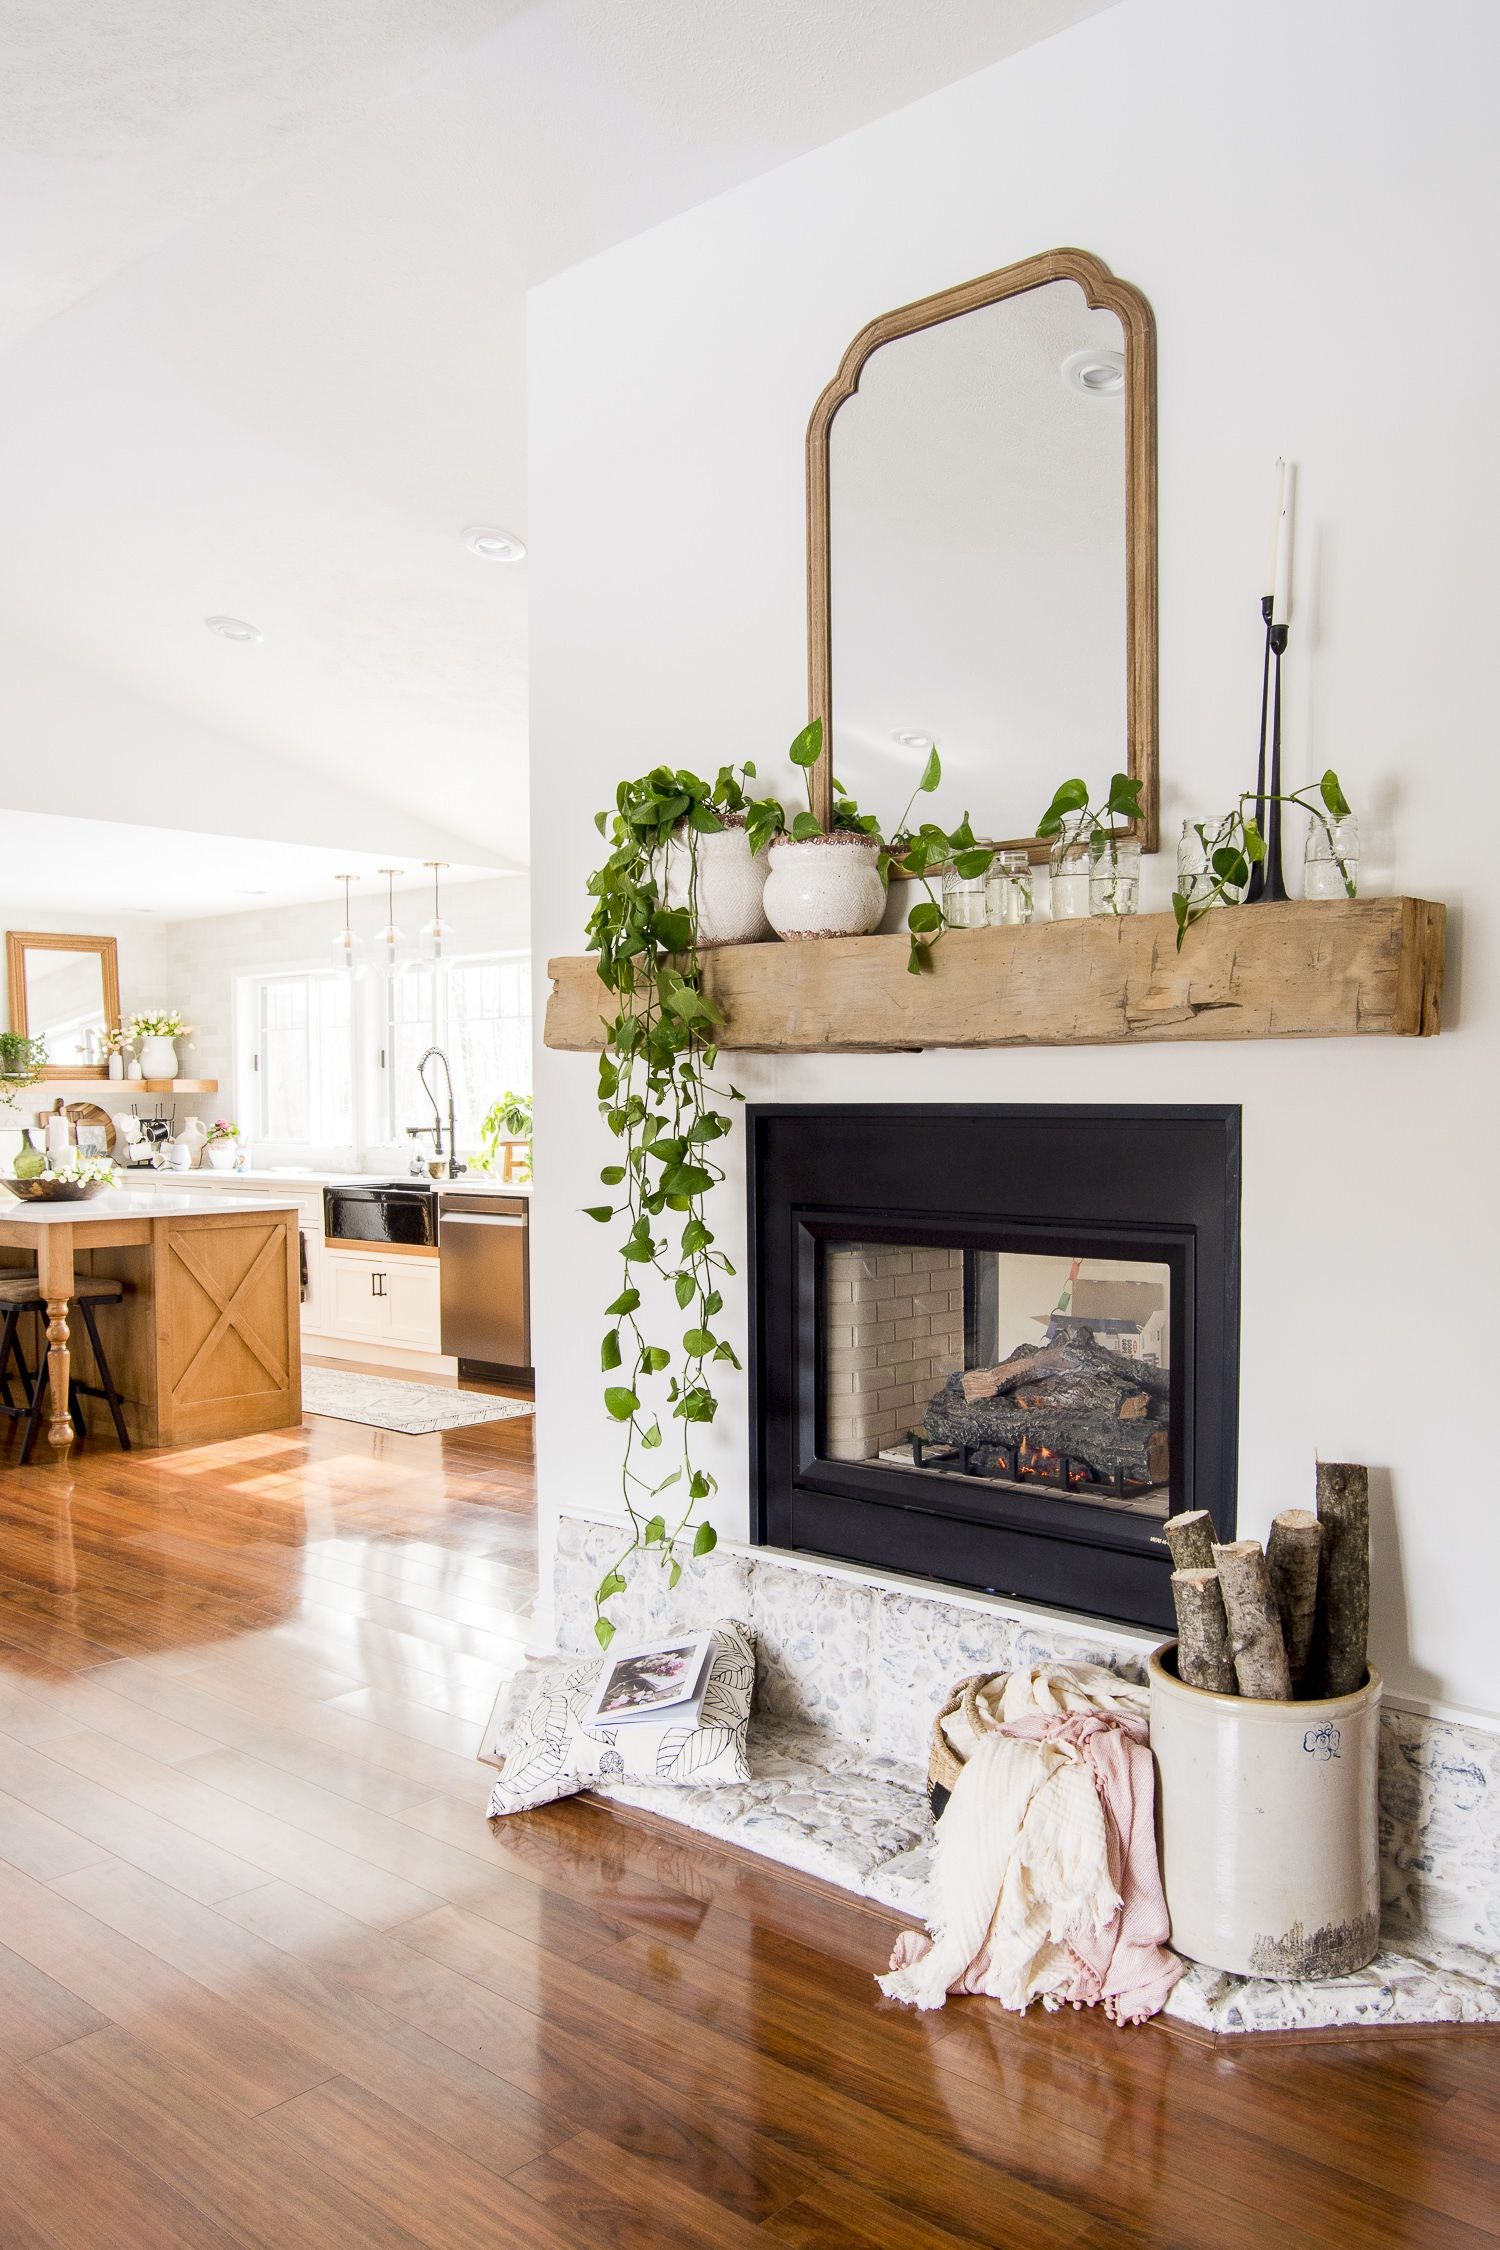 Styling spring mantel decor with plants is an easy task! Learn how easy propagating pothos is, while letting this indoor plant serve as decor too! #fromhousetohaven #propagatingpothos #indoorplants #springmanteldecor #fireplacedecor #springdecorating #pothos